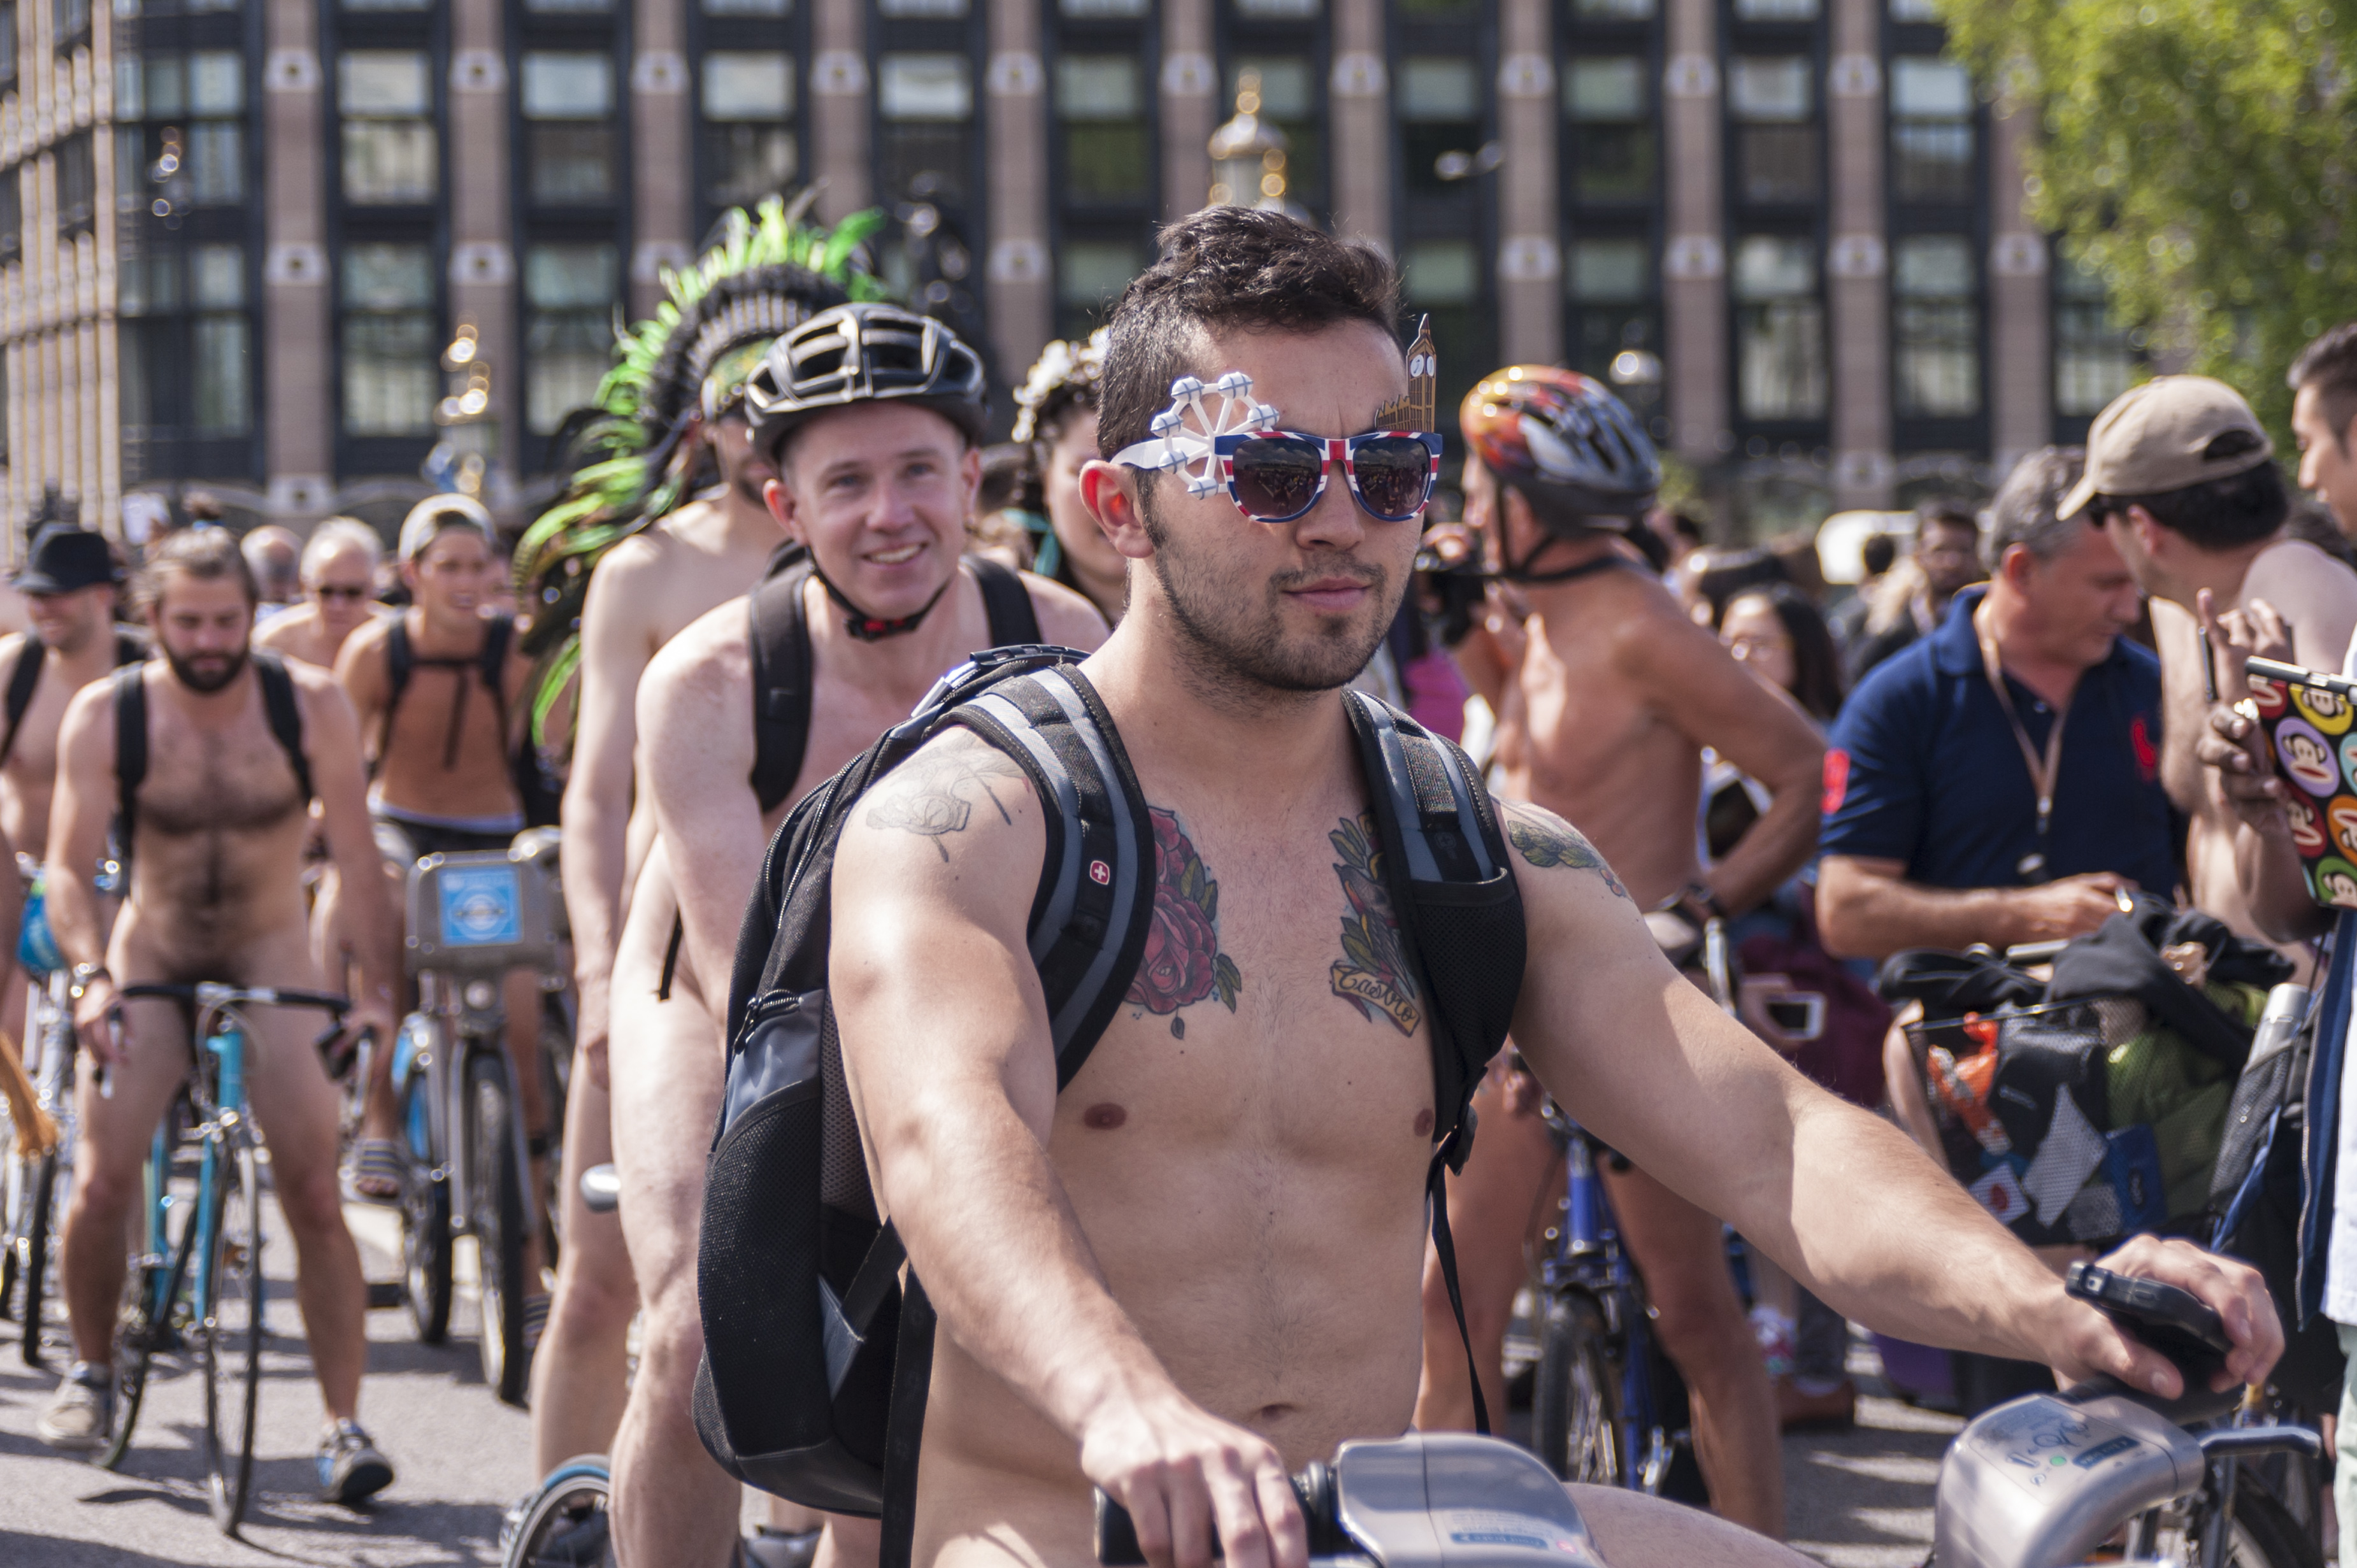 world naked bike ride 2014 August 17, 2014 3700 × 2462Pictures: World naked bike ride ...